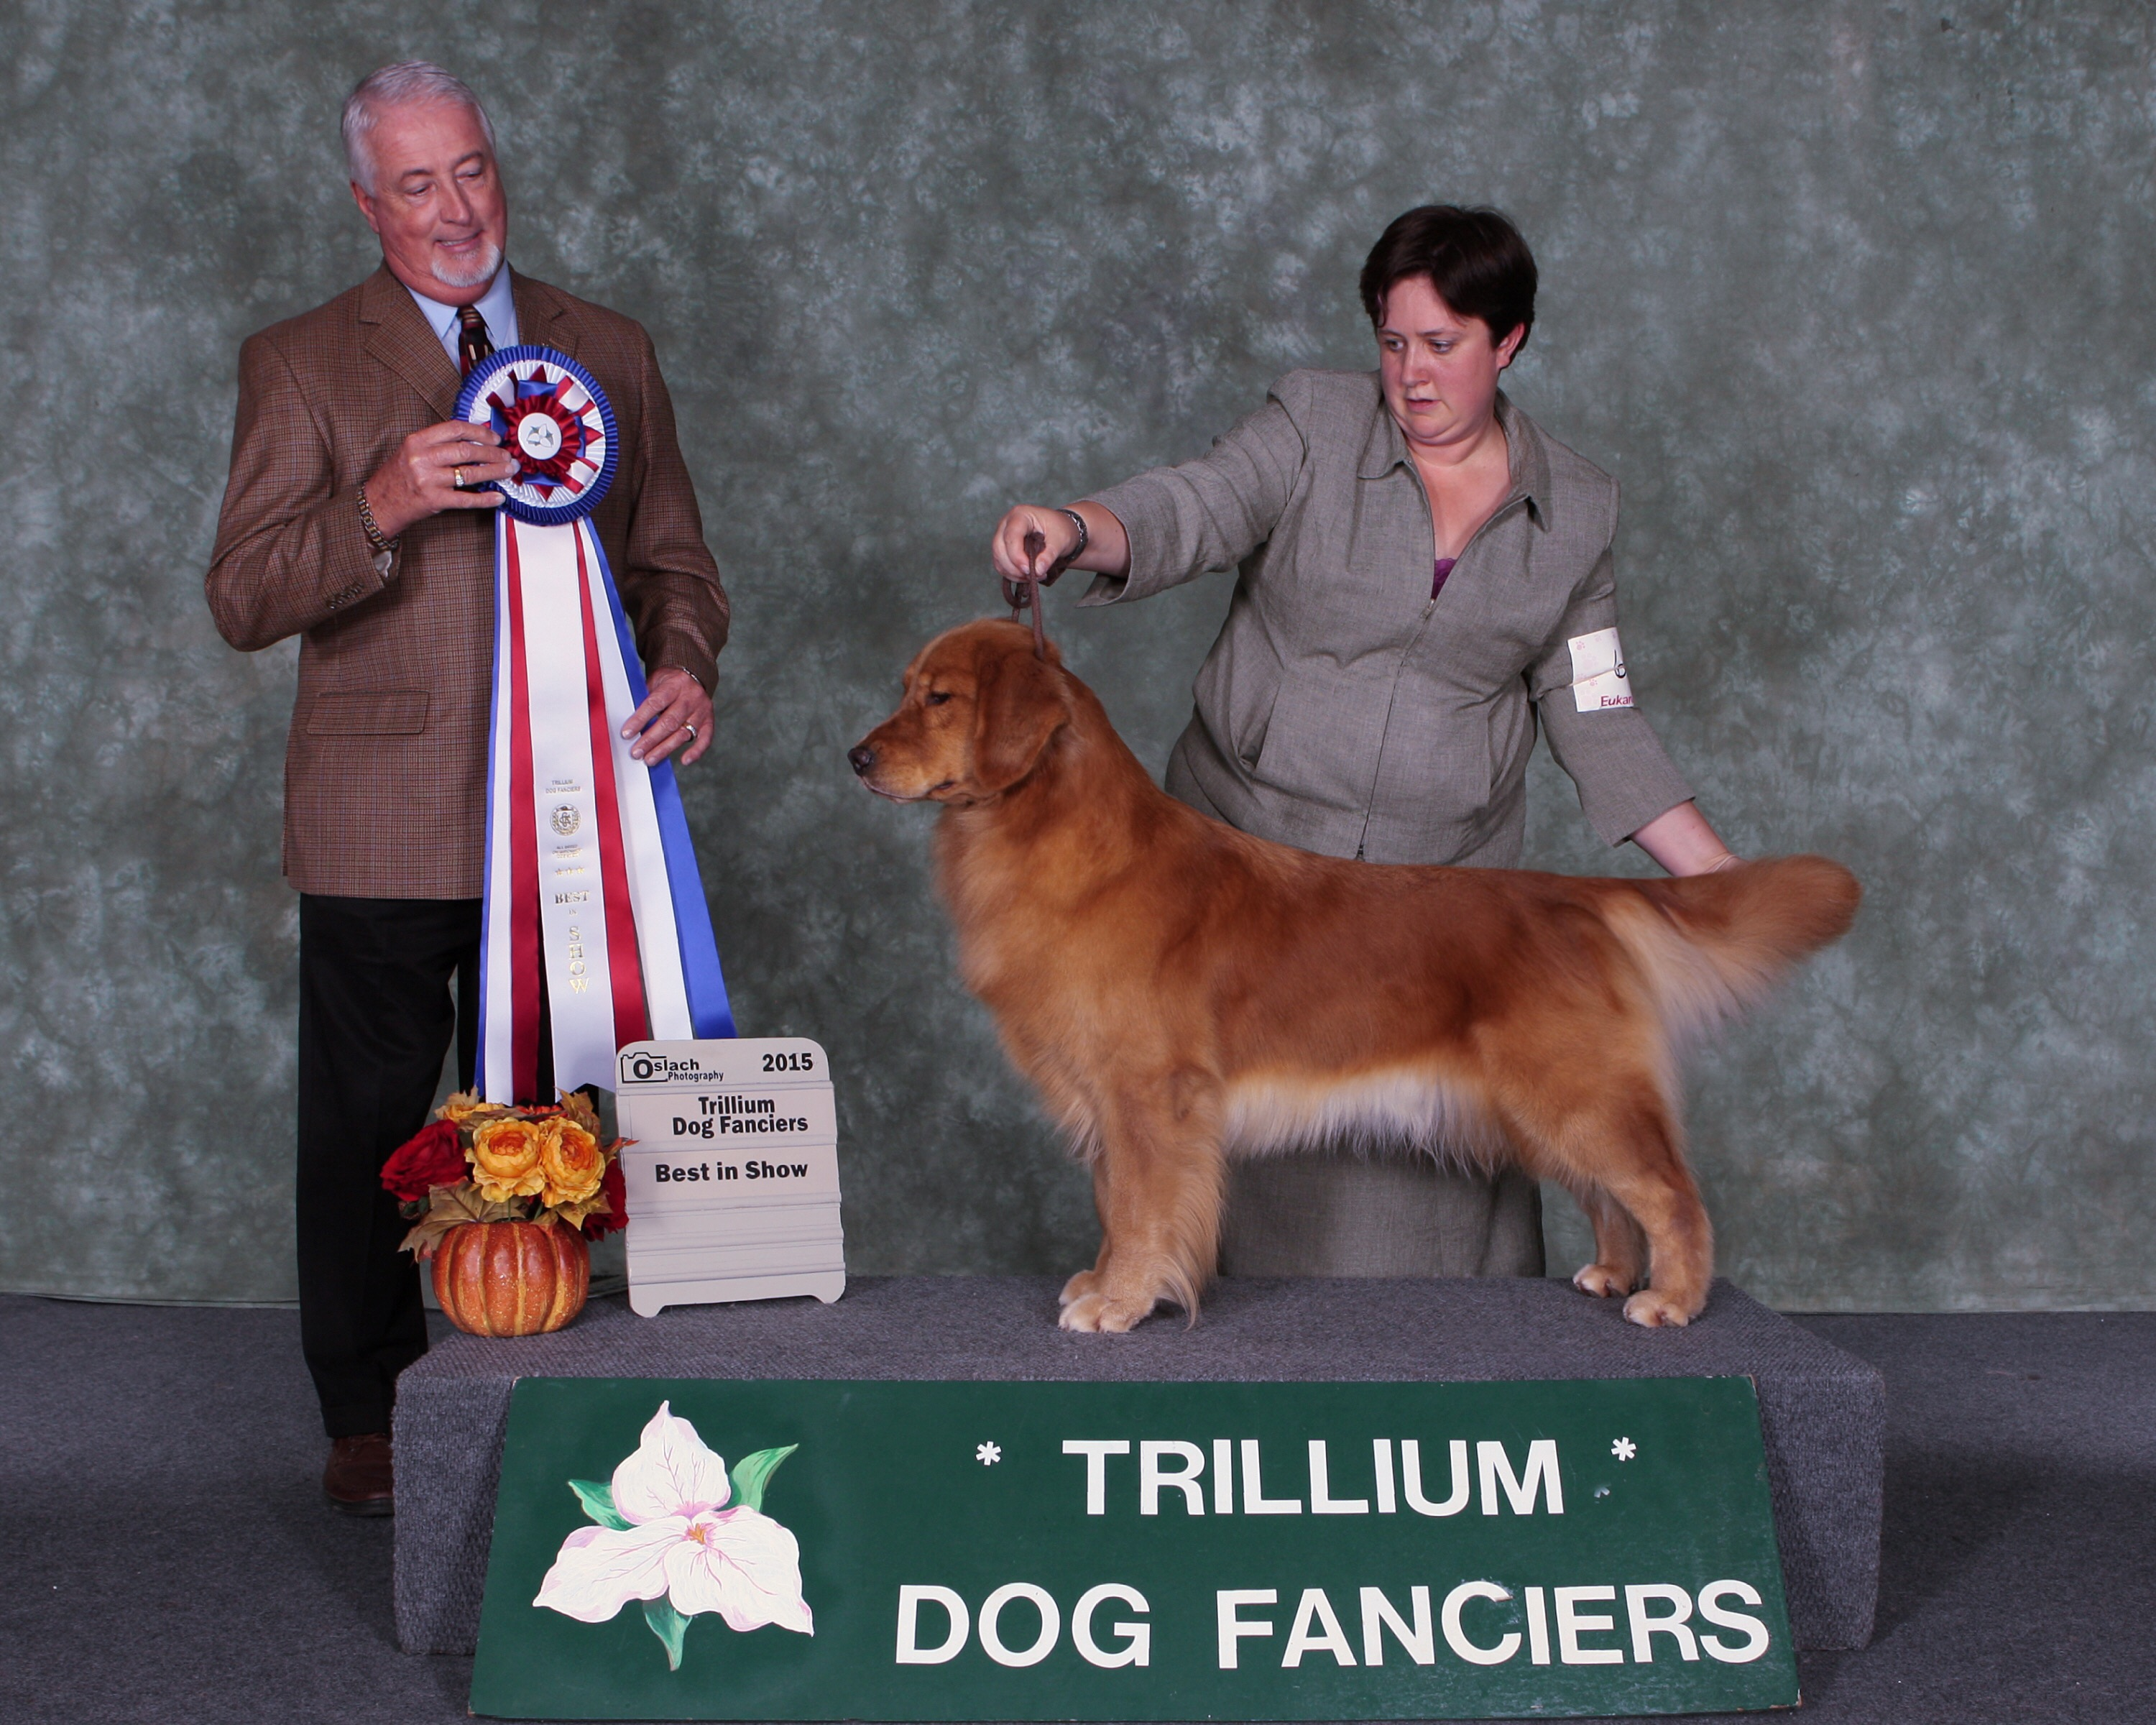 Best in Show under esteemed judge Dr. Steven Keating (Texas, USA)